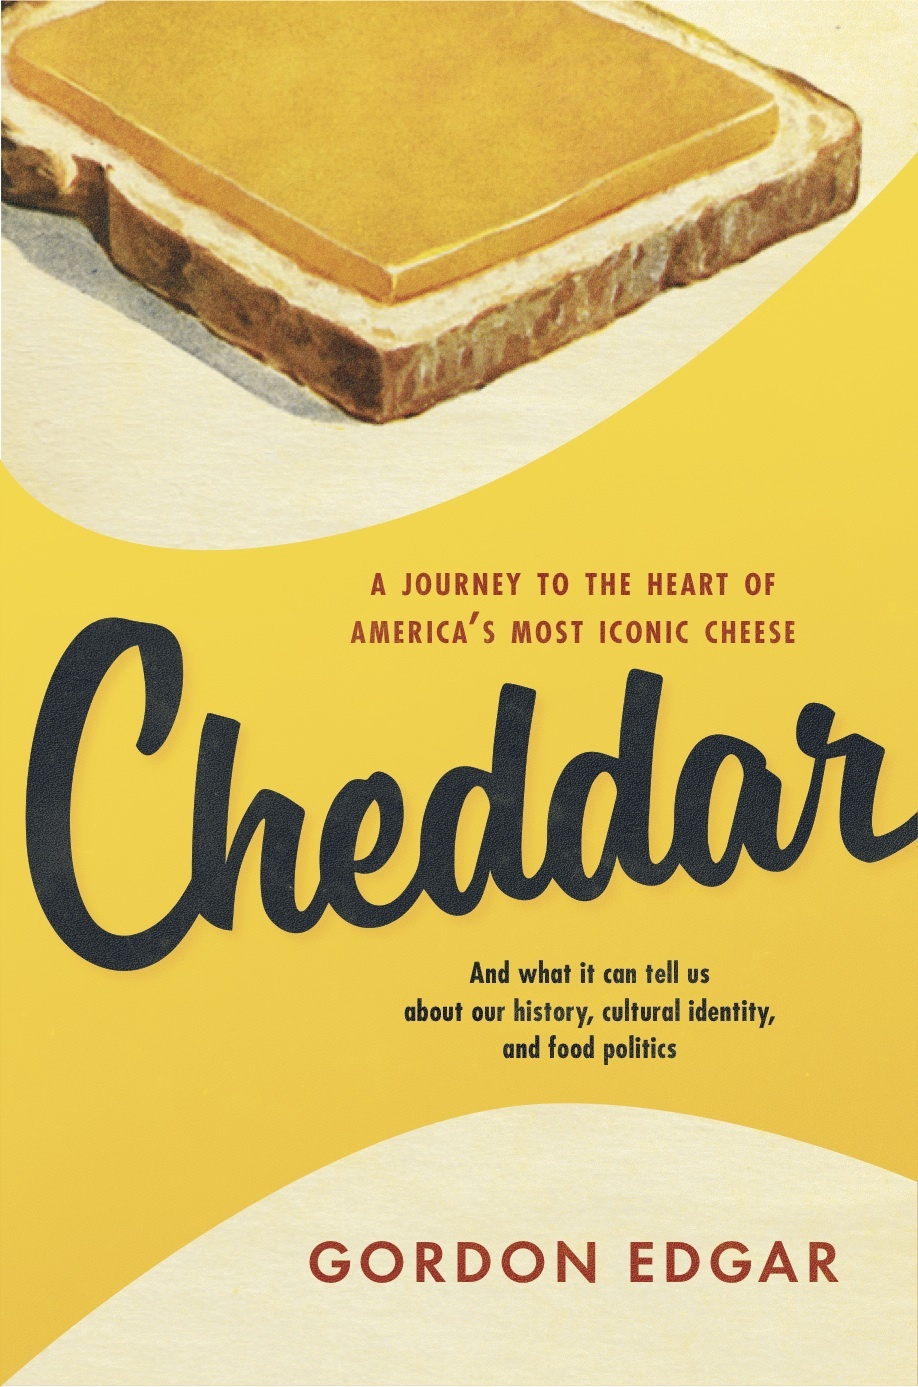 Cheddar cover for publication